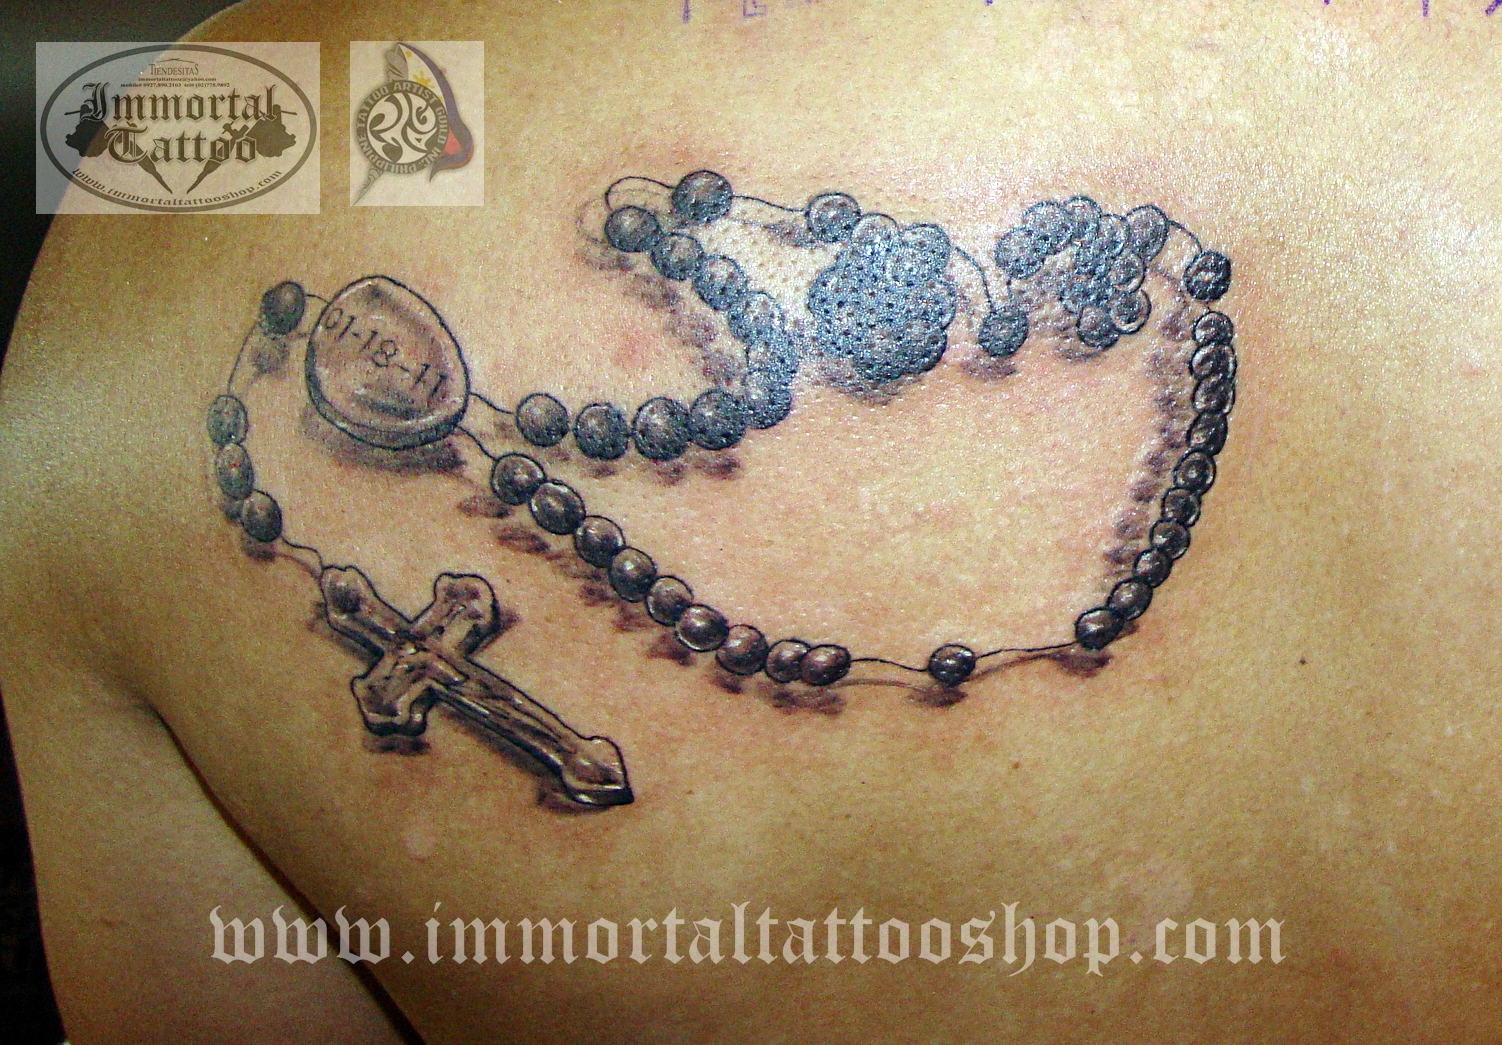 Immortal Tattoo Manila Philippines By Frank Ibanez Jr 3D Ideas And Designs